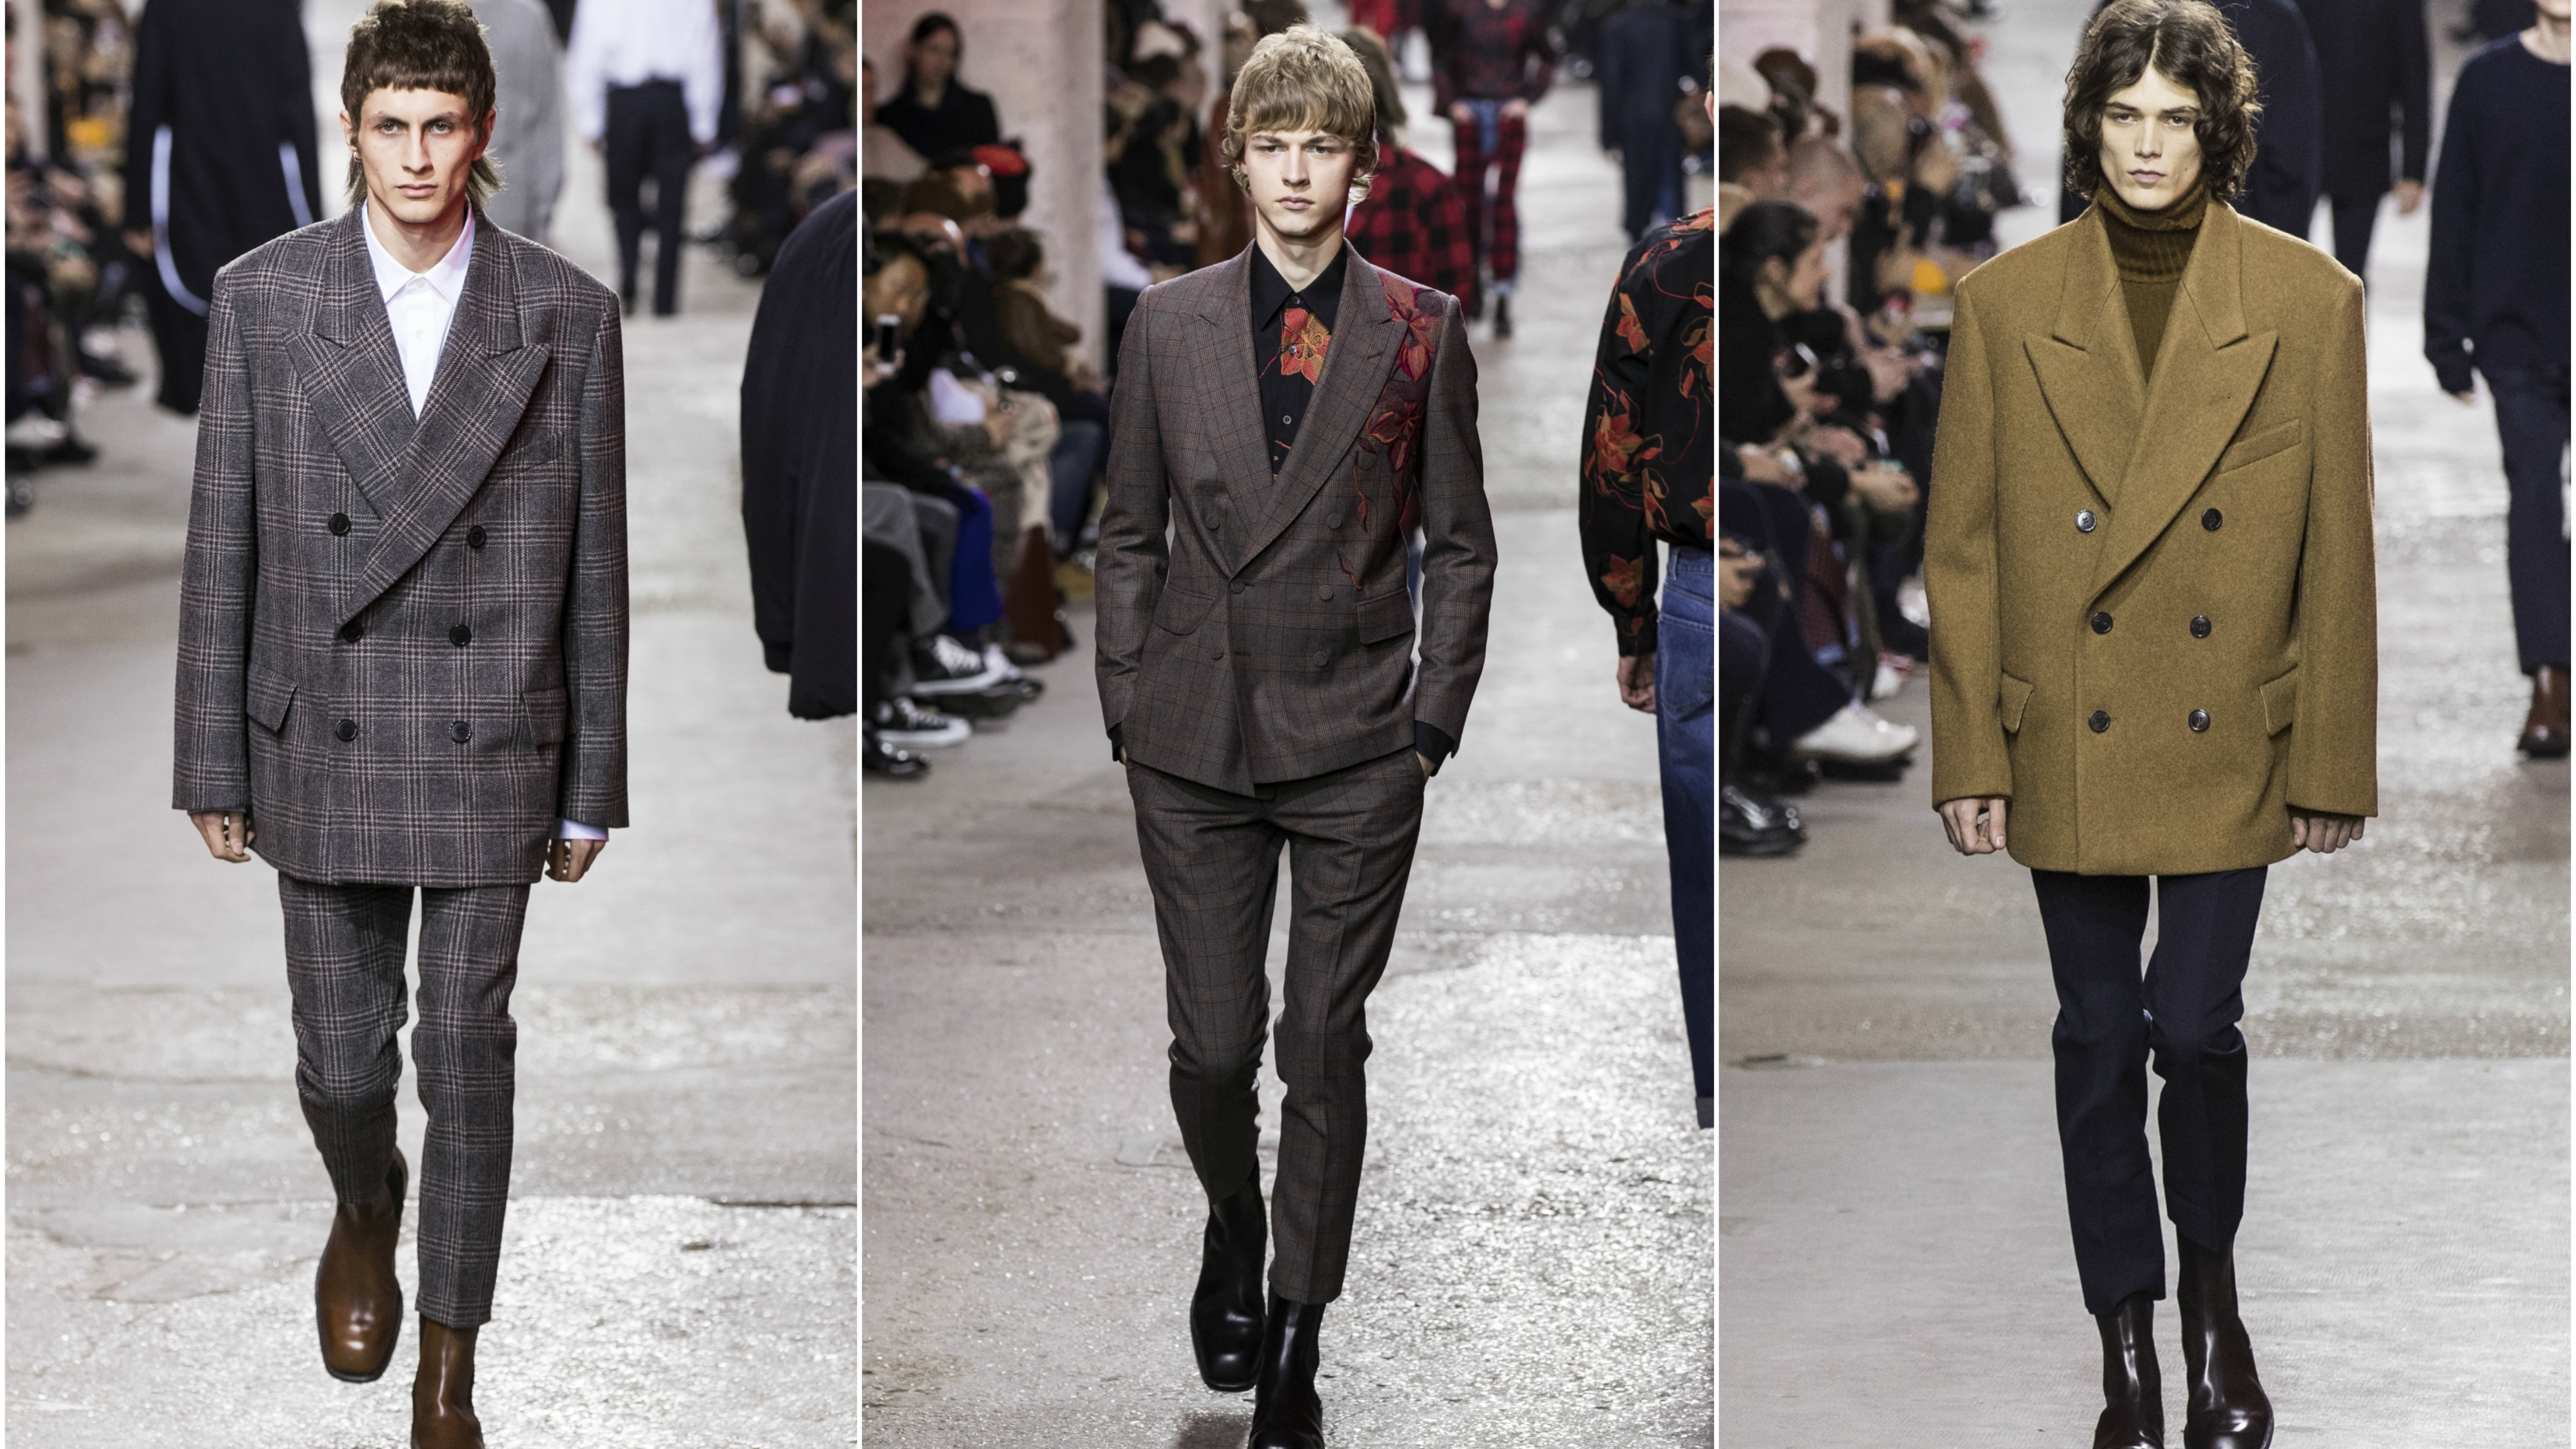 shows reinvented are being fashion Mens at suits Europe's wuPiOZkXT